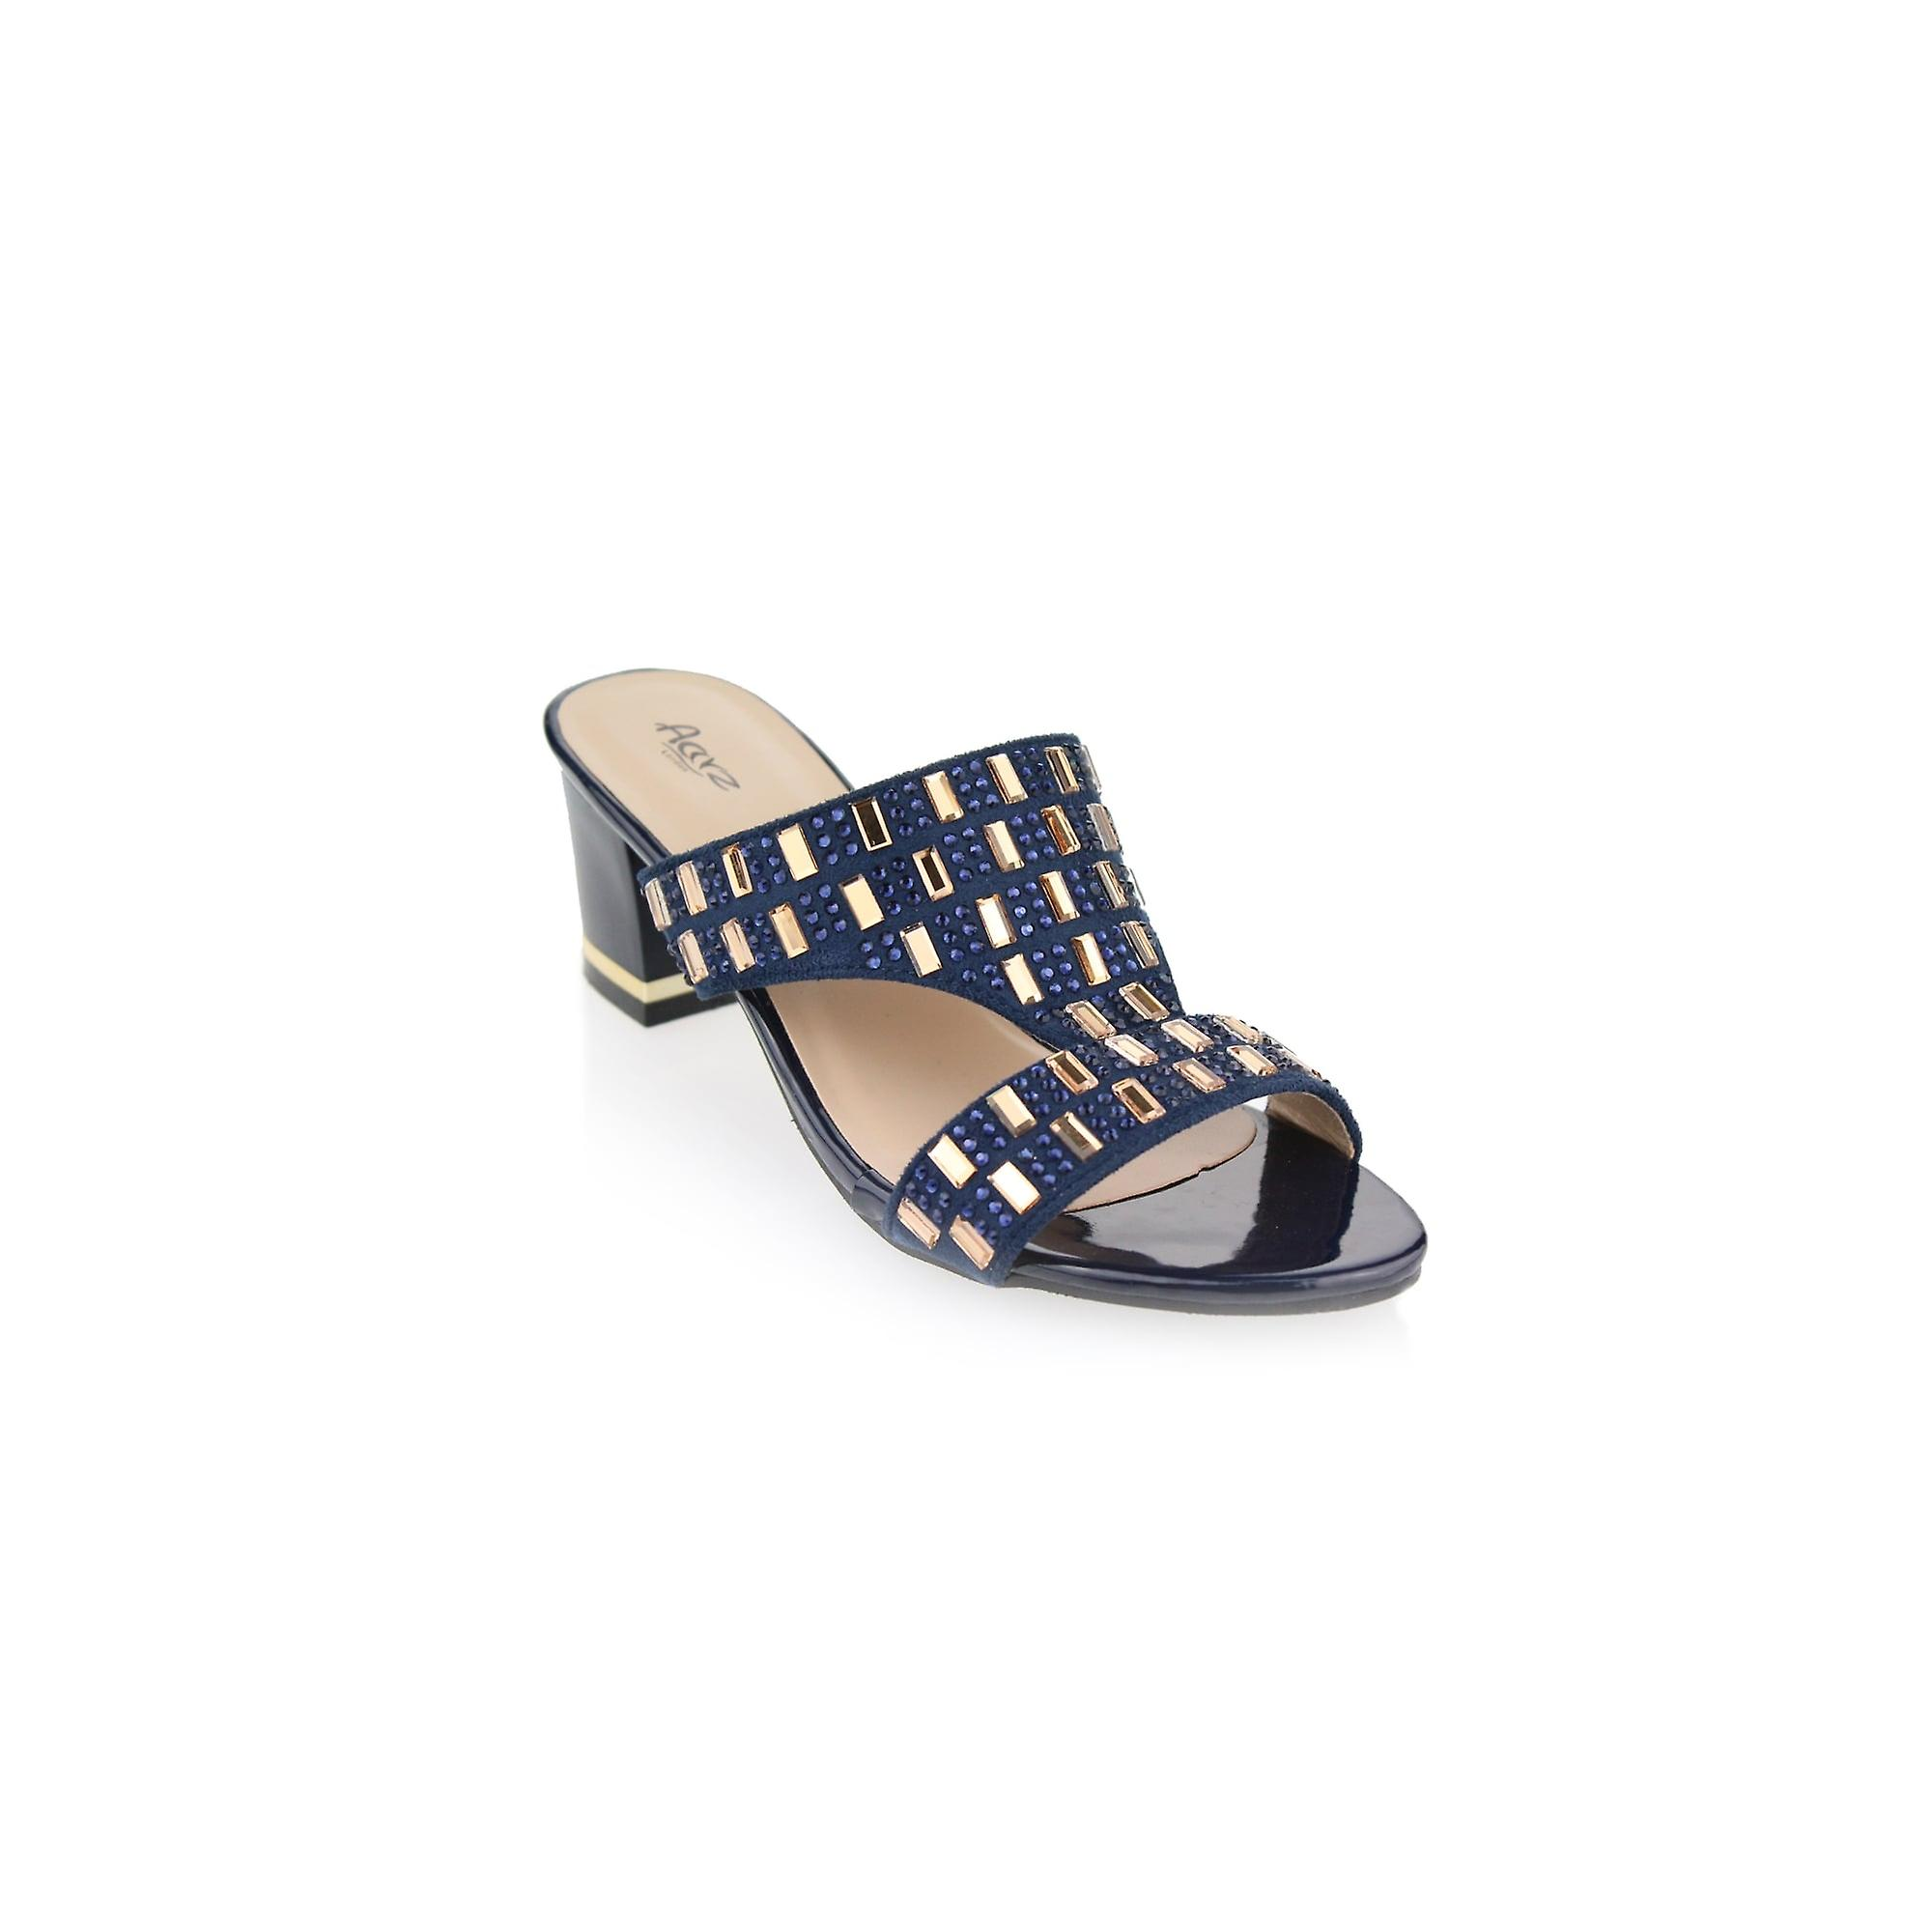 70 247 Aarz London Alyx Gems Studded Sandals